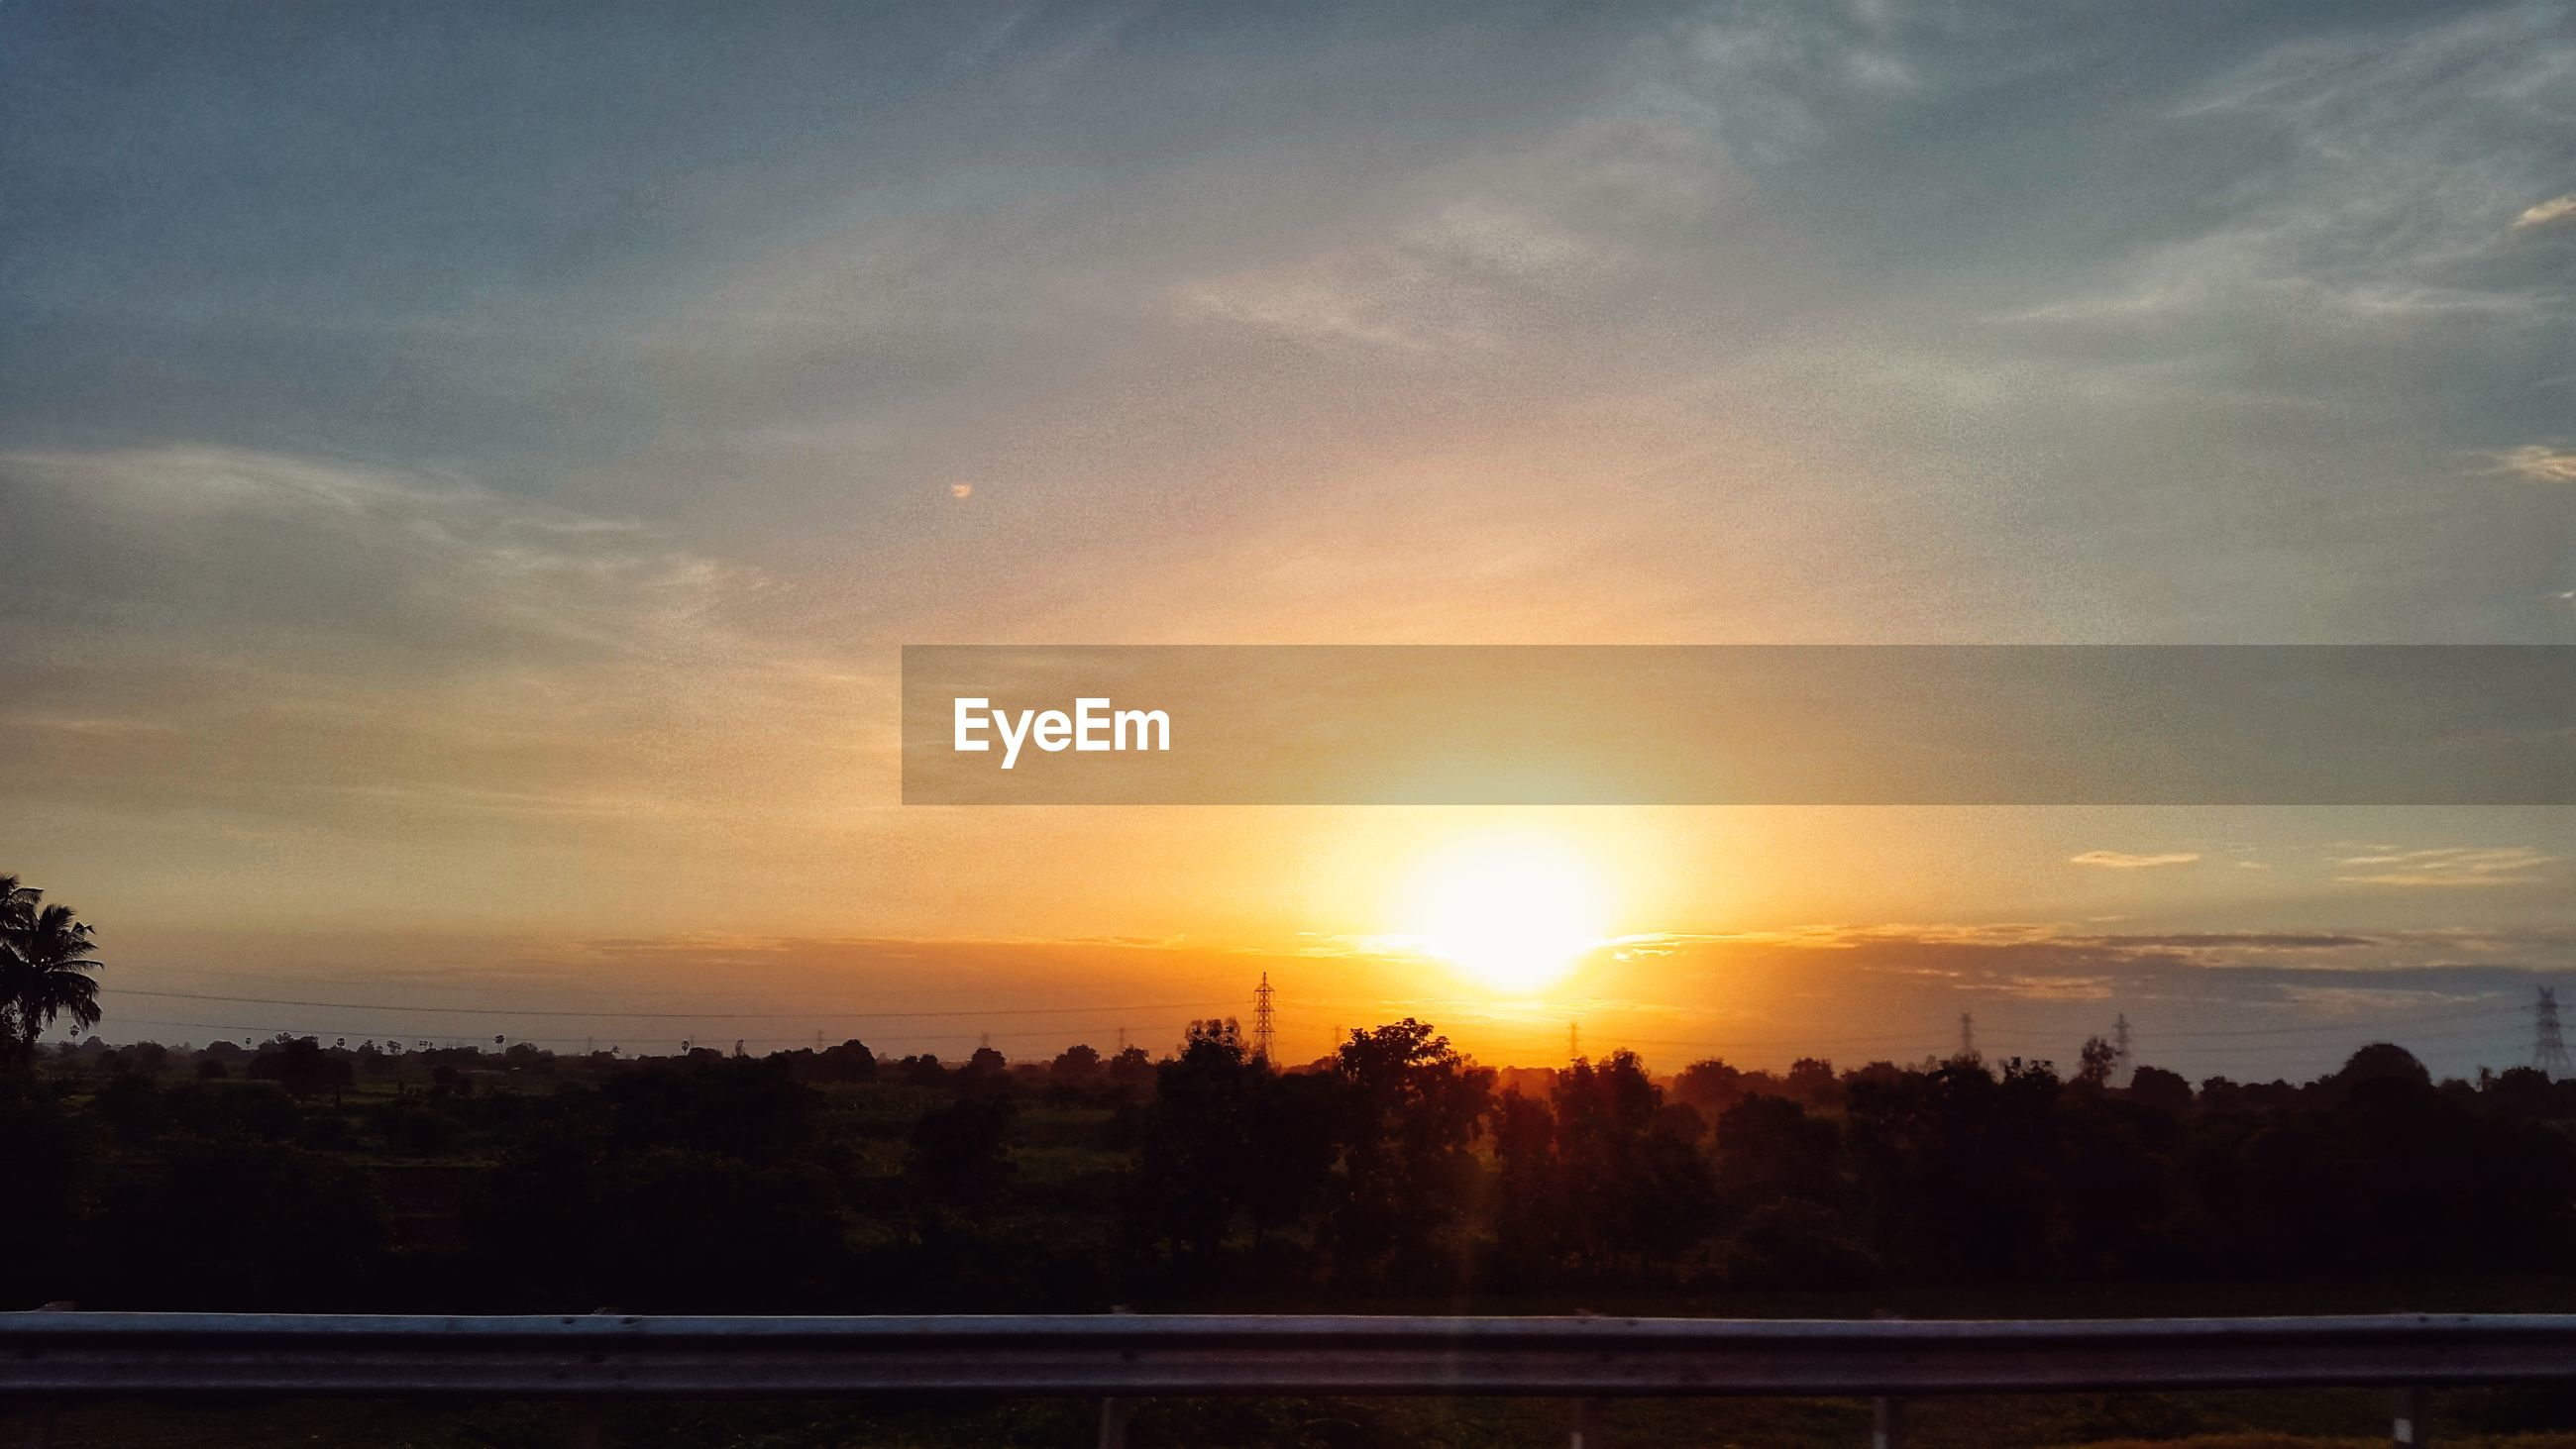 SCENIC VIEW OF SUNSET OVER SILHOUETTE LANDSCAPE